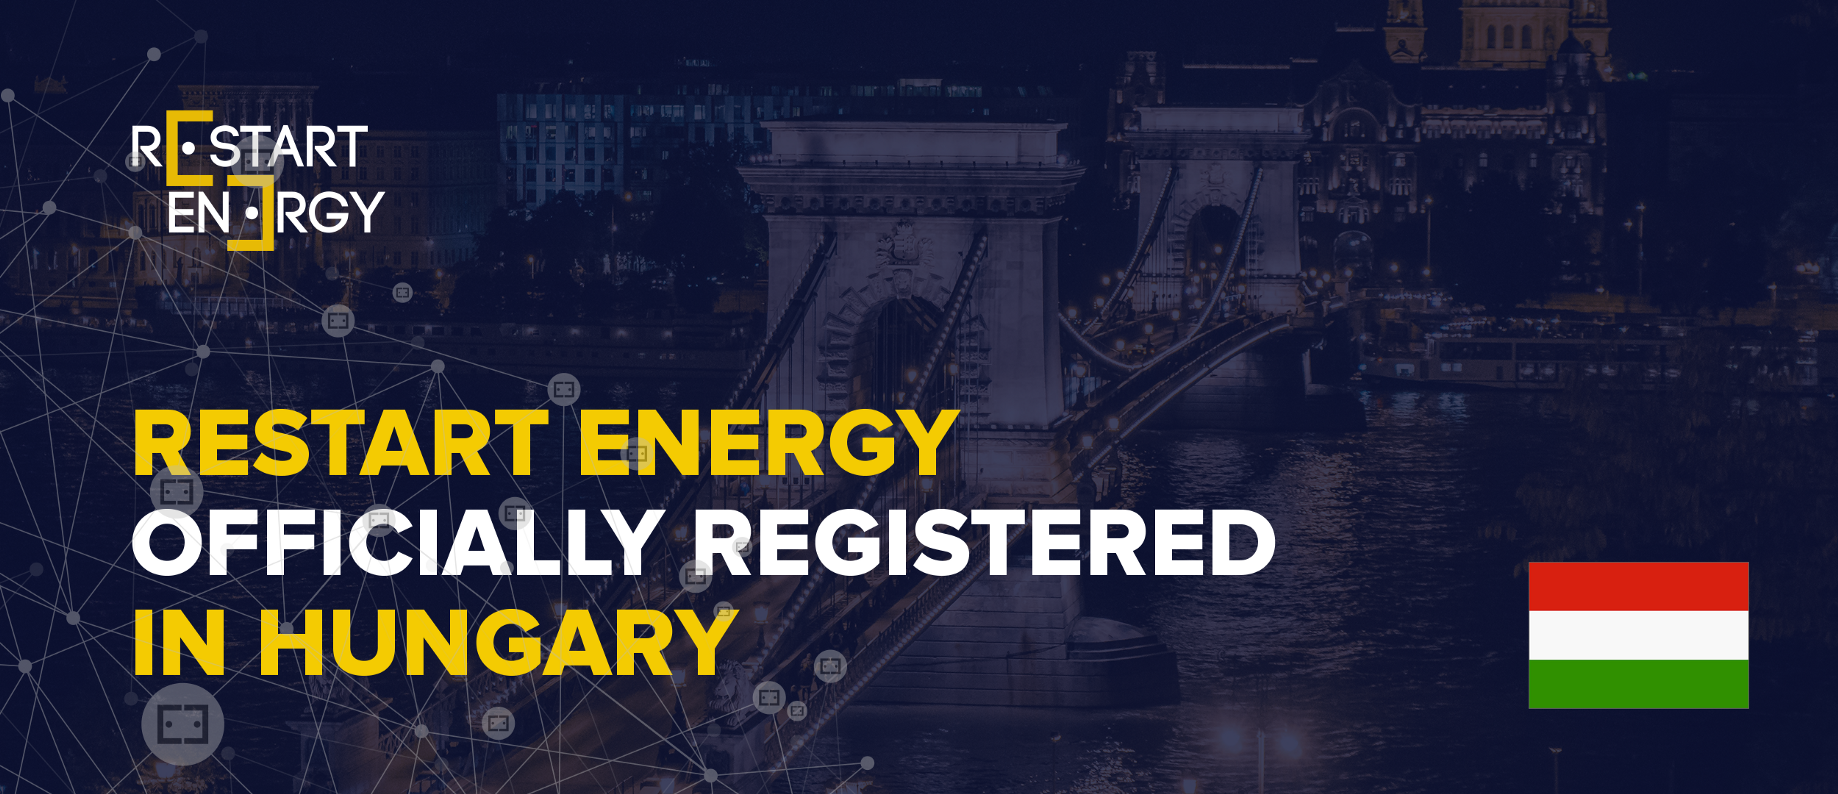 Restart Energy Officially Registered in Hungary - Restart Energy